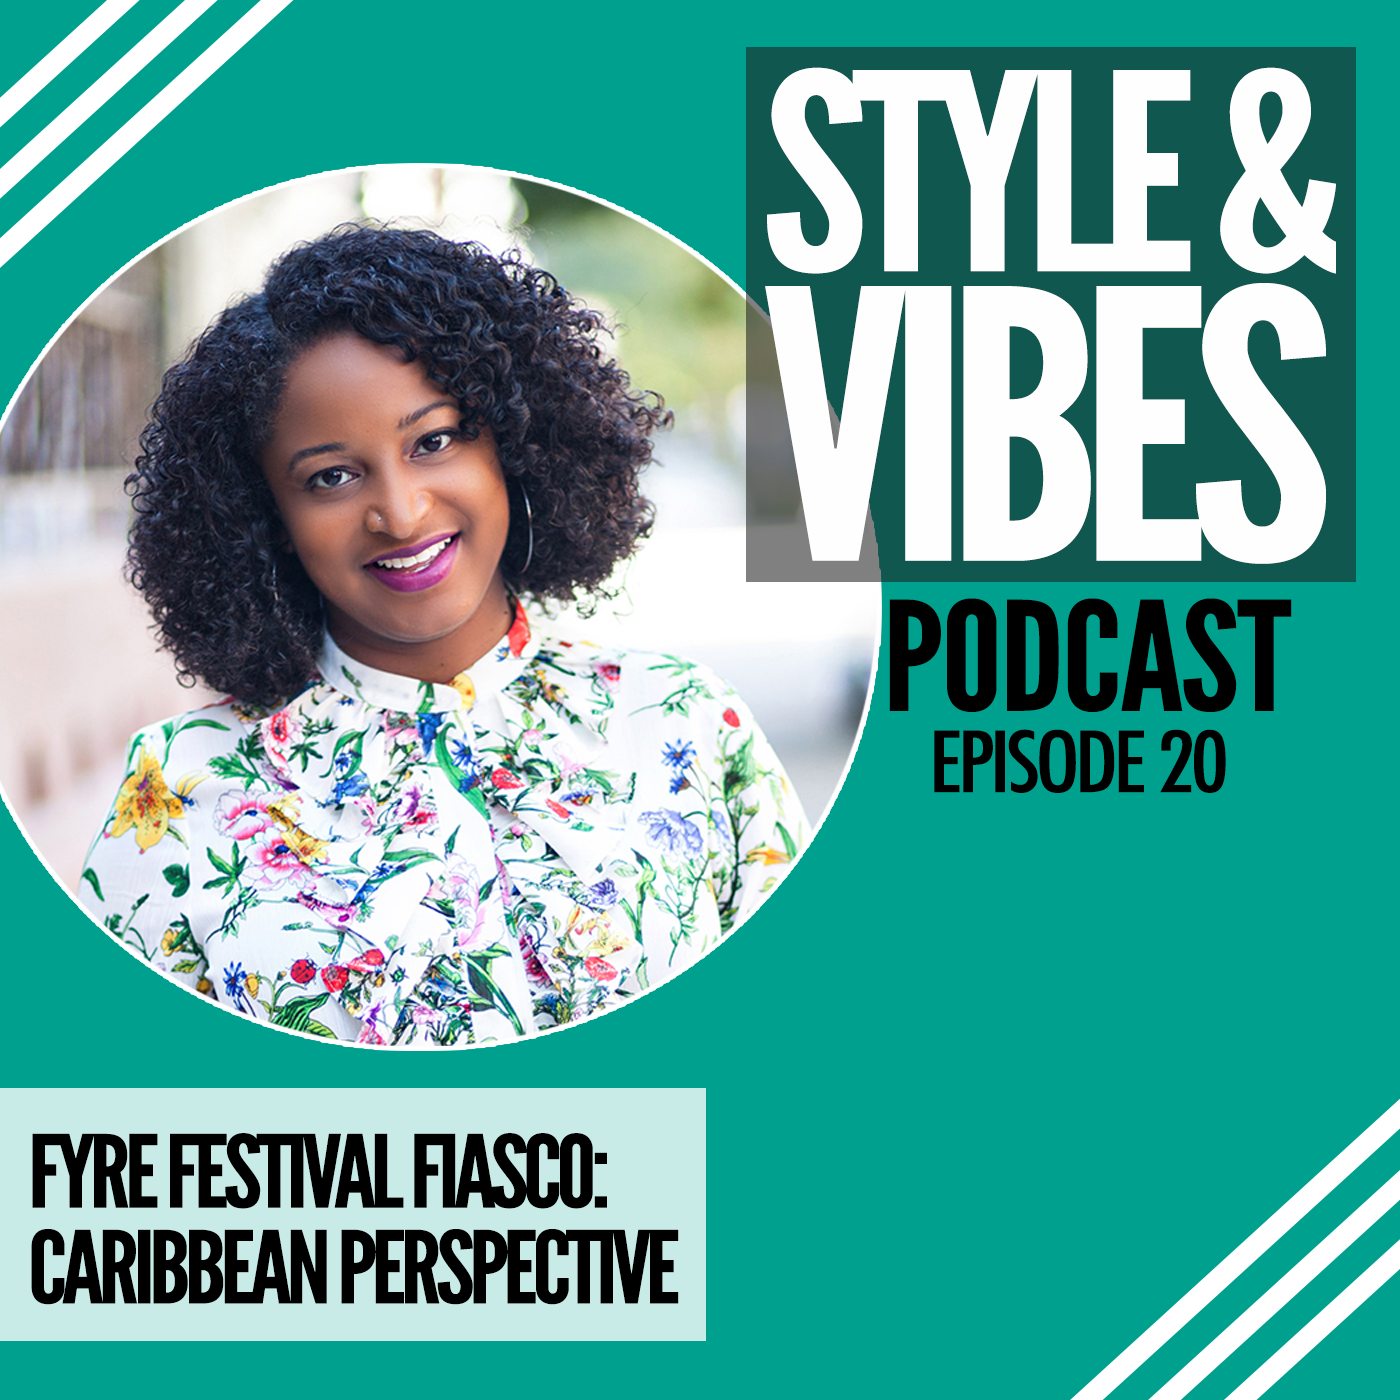 The Festival Fiasco: Caribbean Perspective